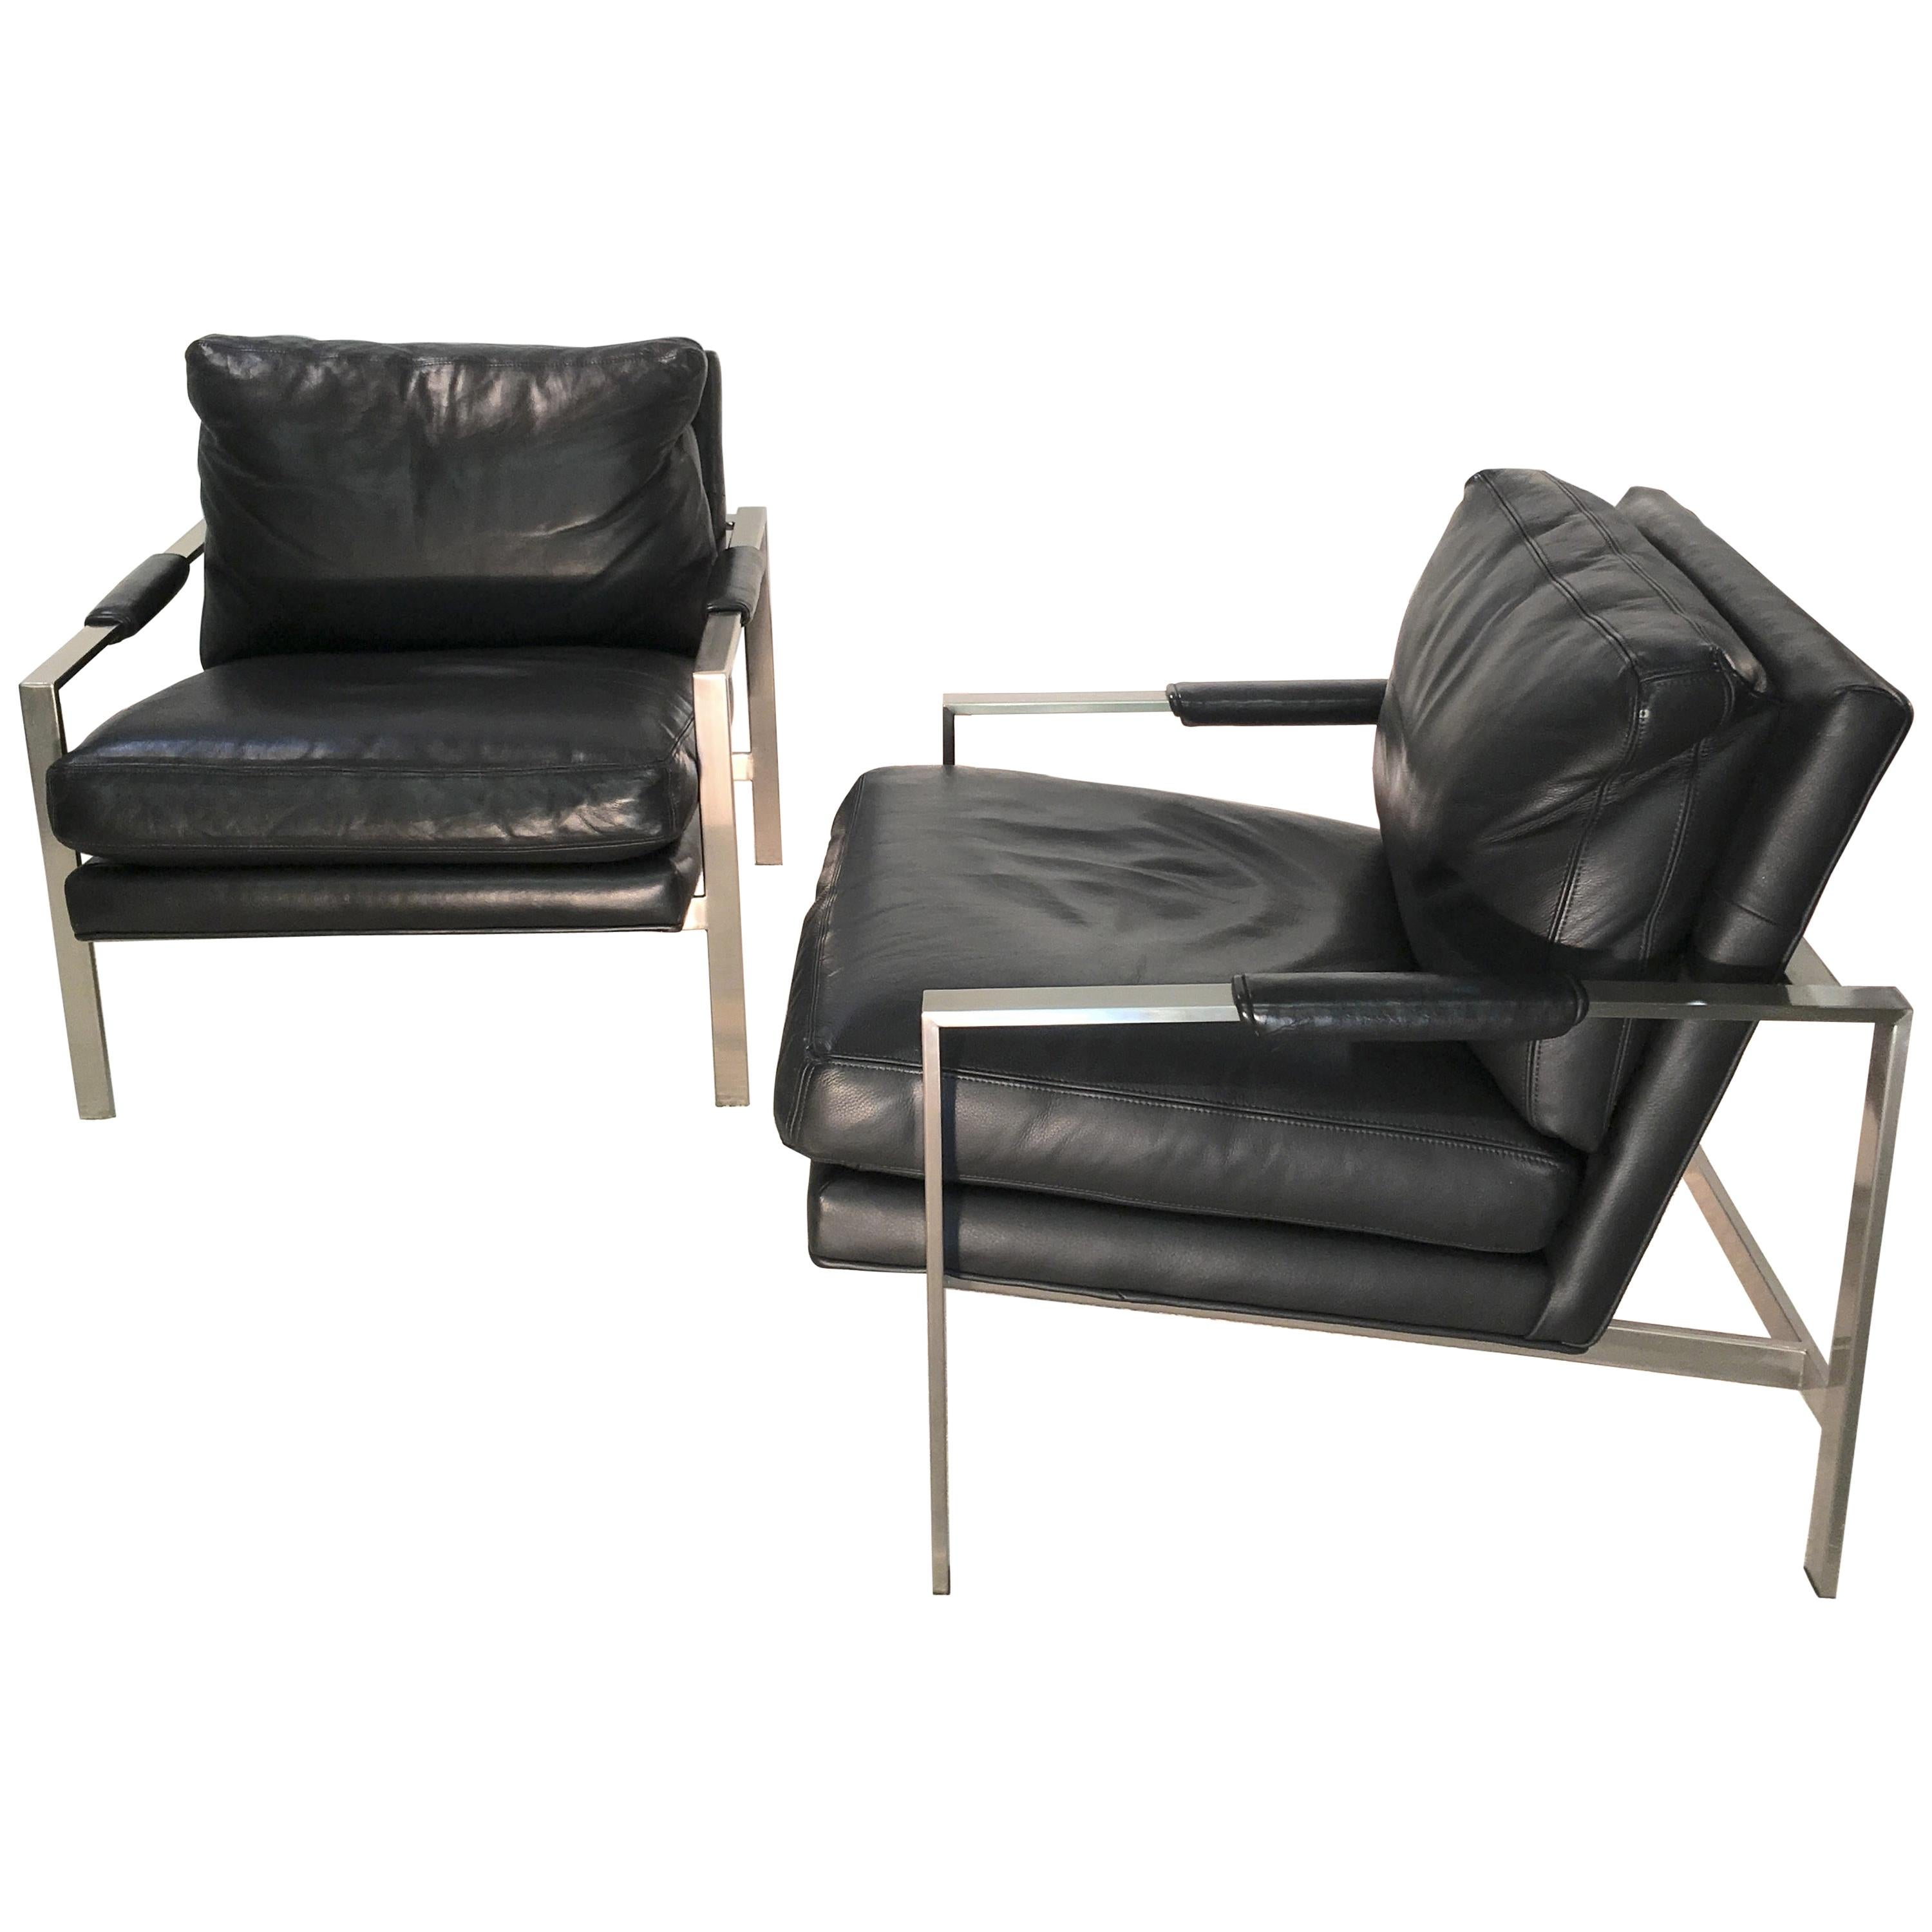 Beau Thayer Coggin Furniture   305 For Sale At 1stdibs